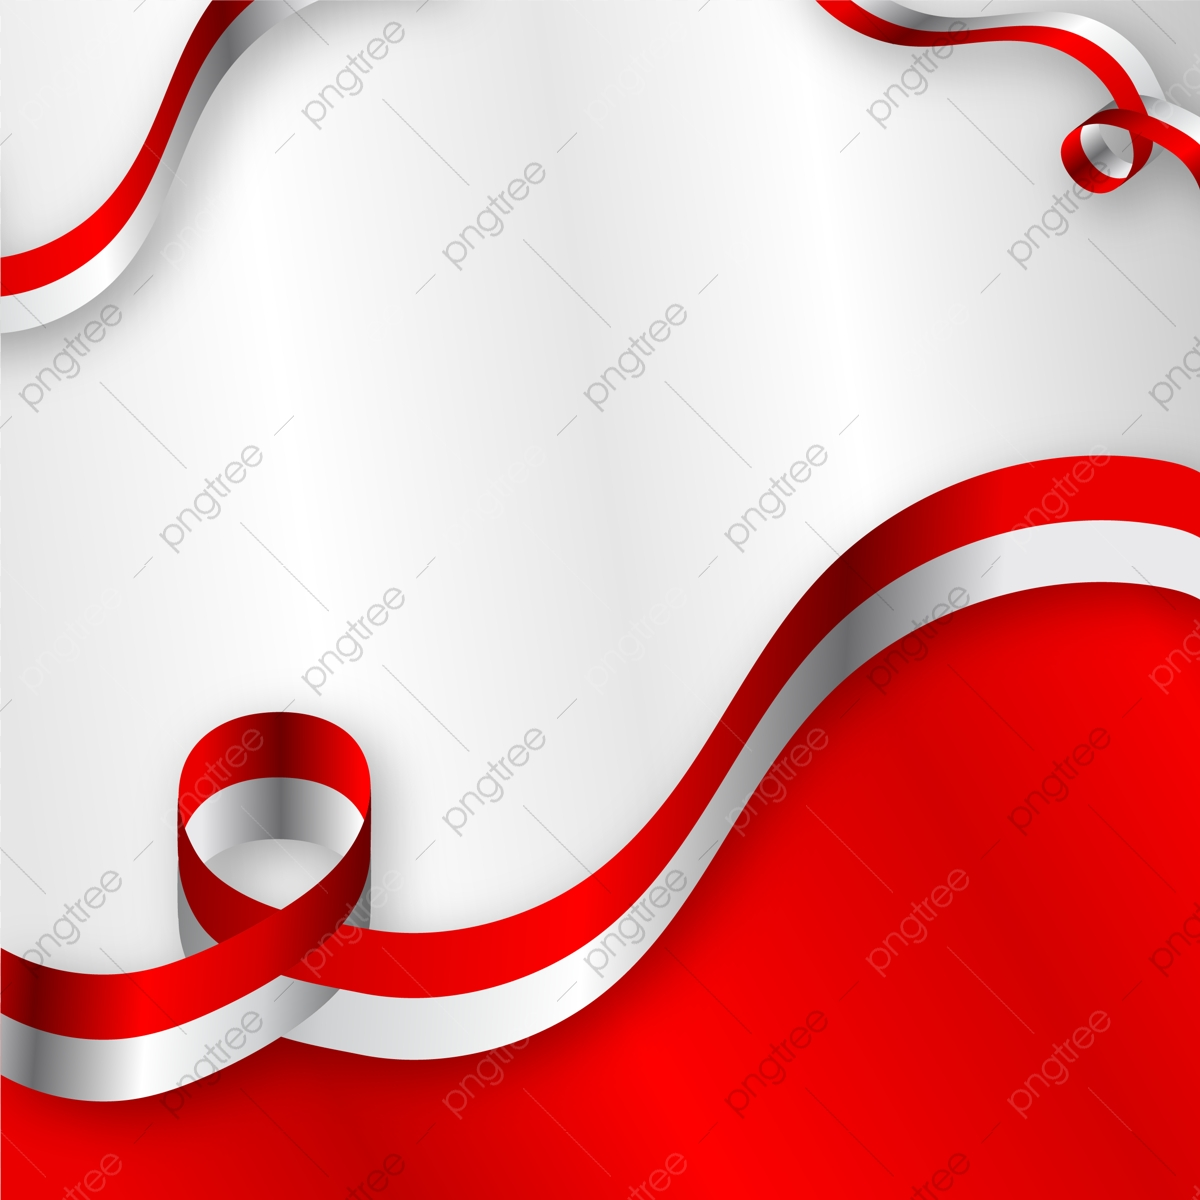 Wavy Png Images Vector And Psd Files Free Download On Pngtree